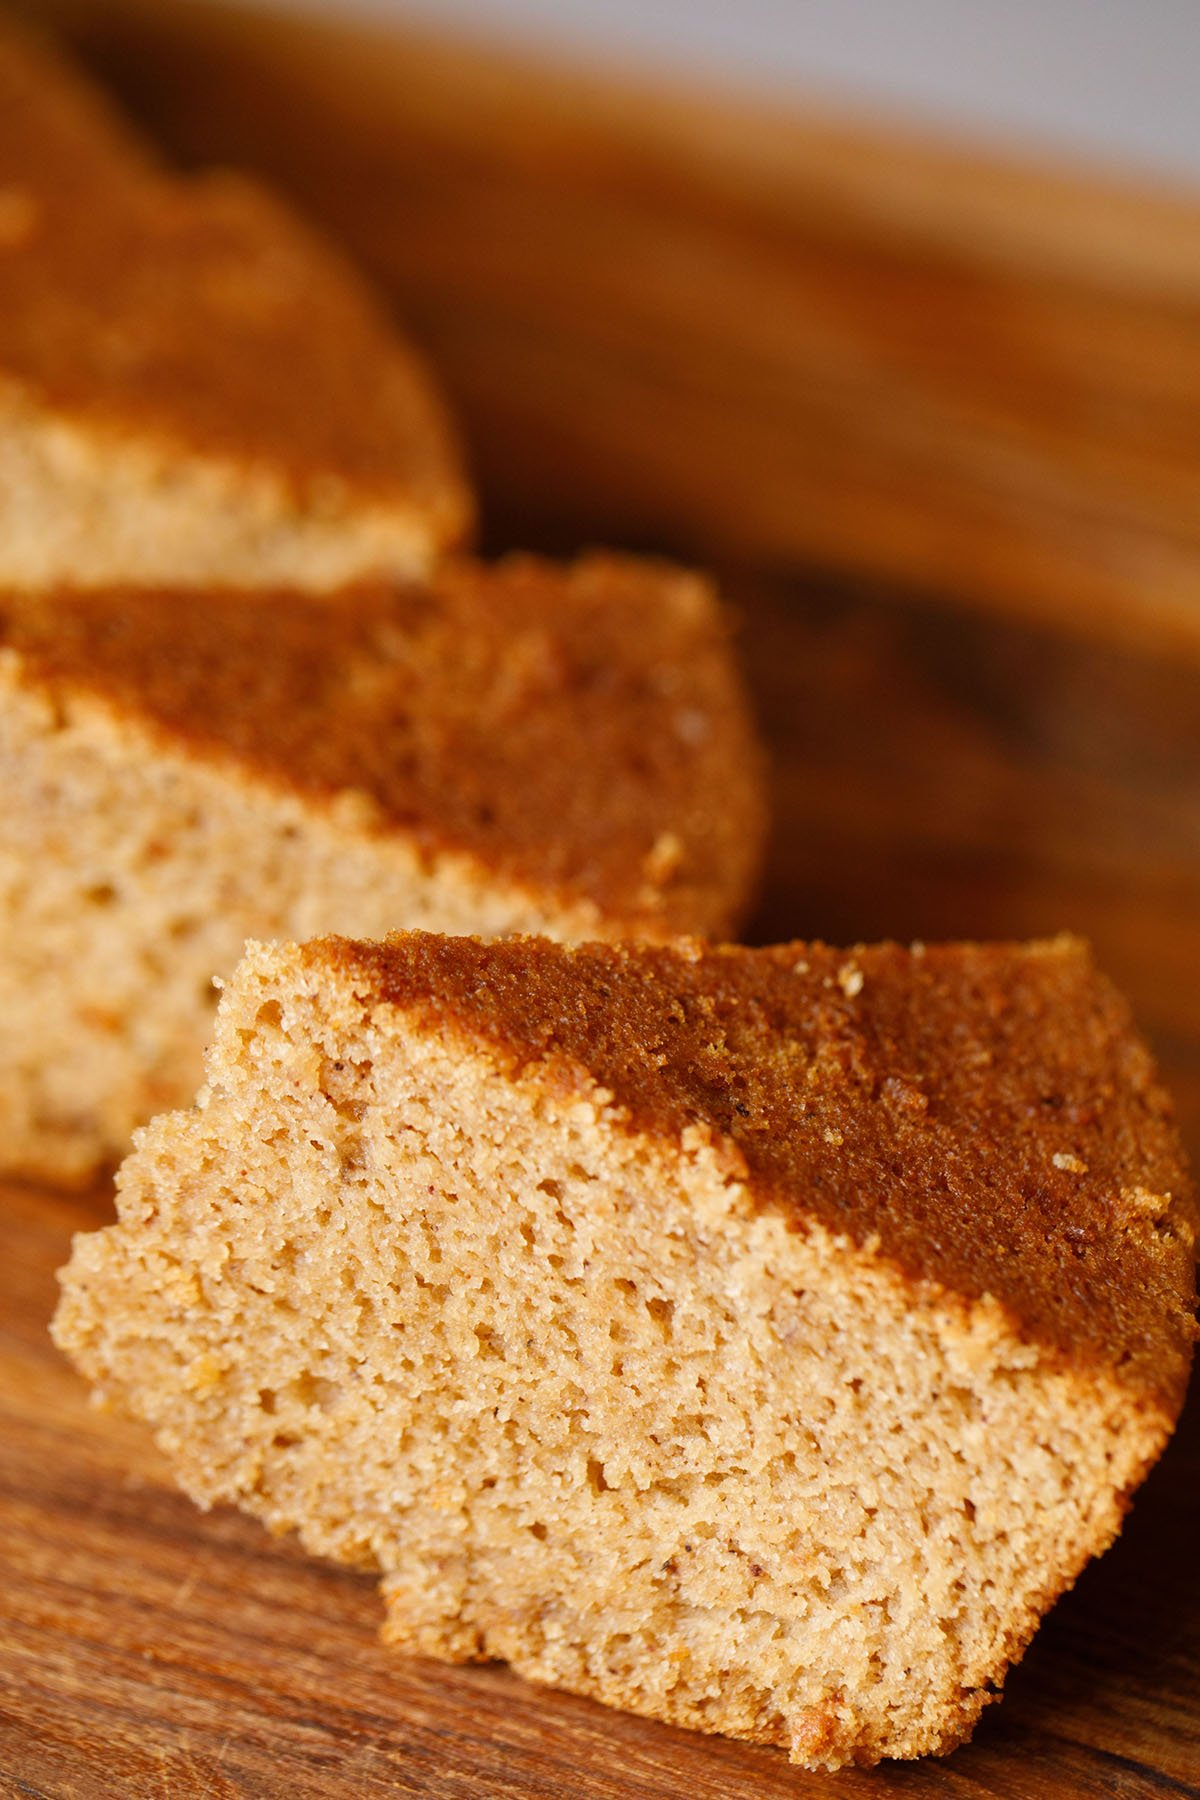 45 degree angle shot of triangular apple cake wedges showing the soft crumb